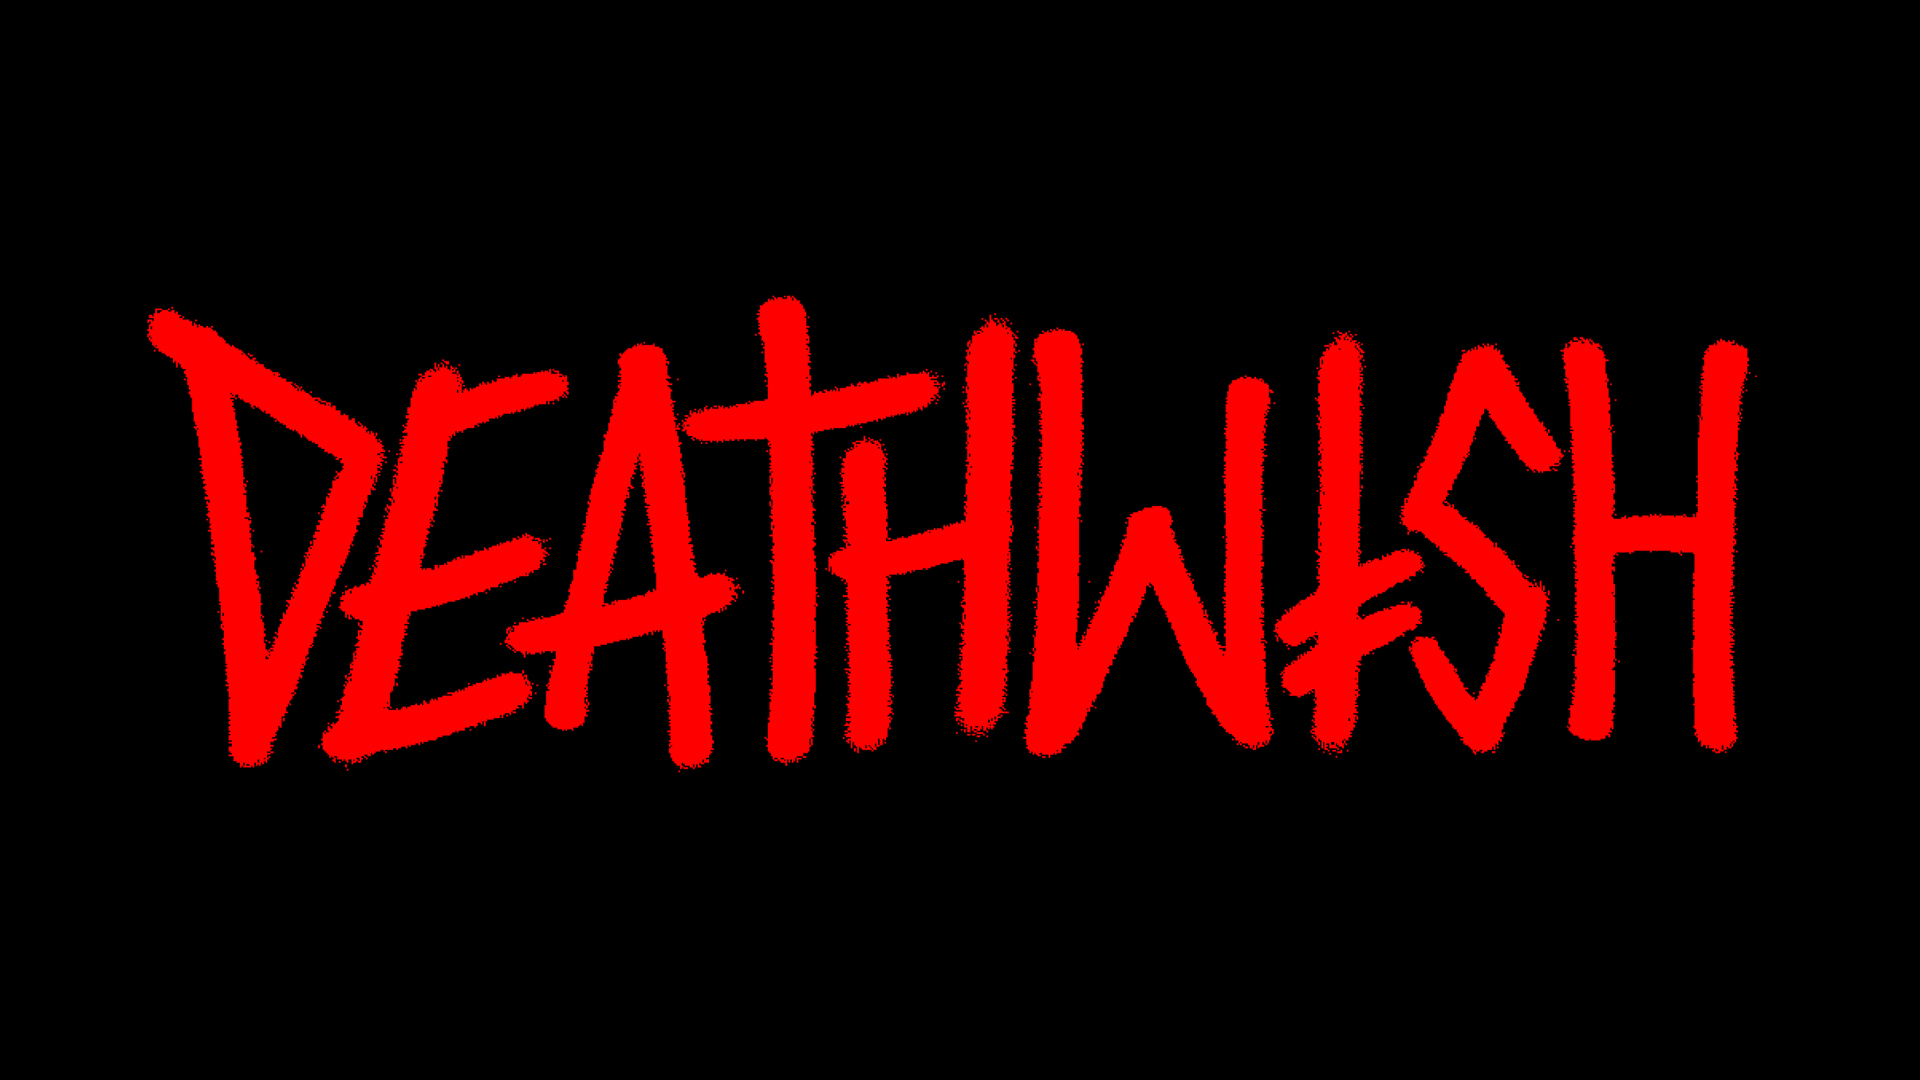 Deathwish Skate wallpapers HD   266616 1920x1080